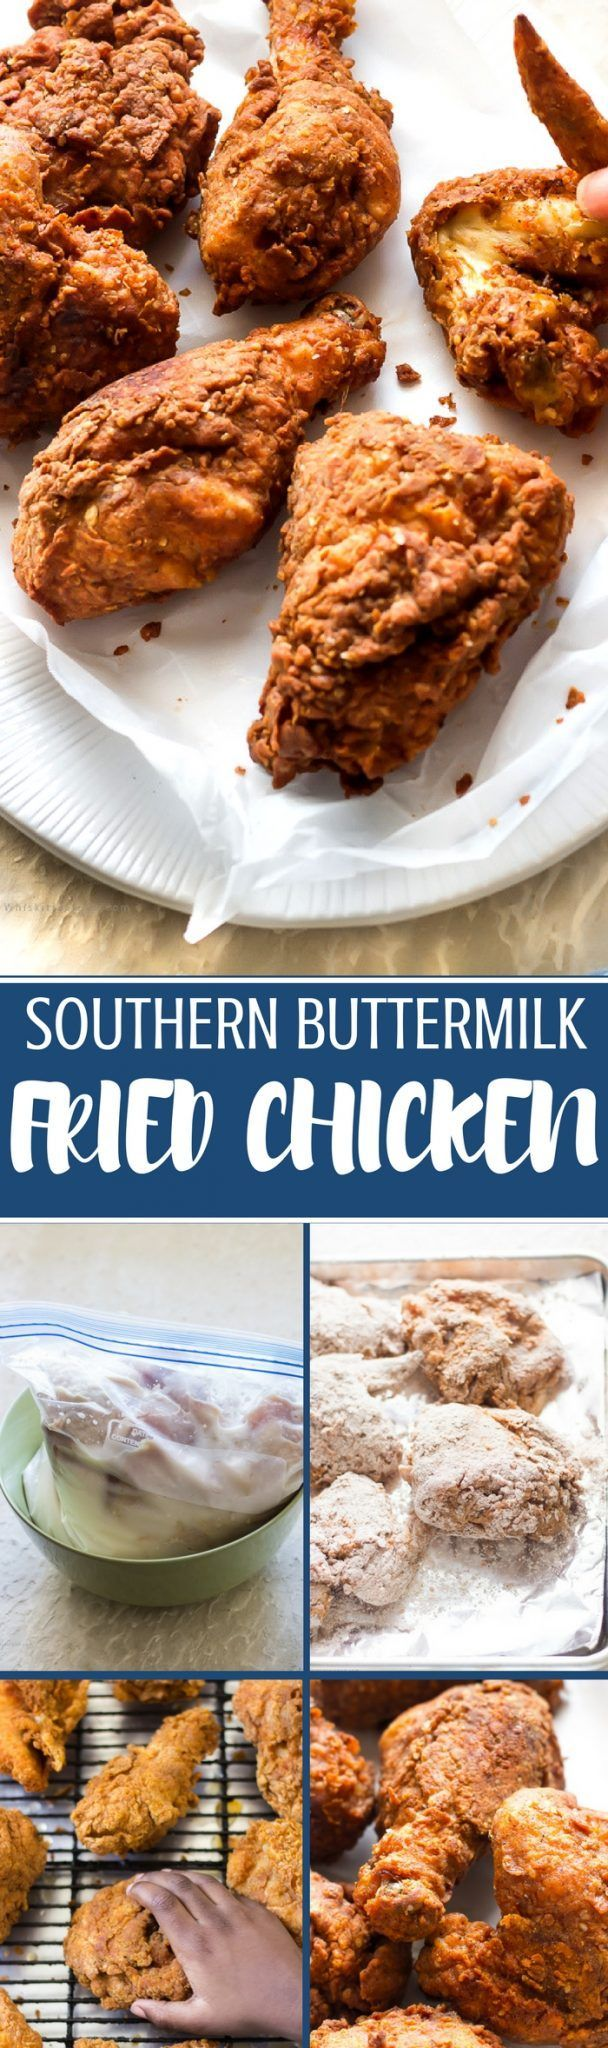 This southern buttermilk fried chicken is golden with a crunchy crust and juicy and tender. It's finger-licking good (thanks to the brine and buttermilk).